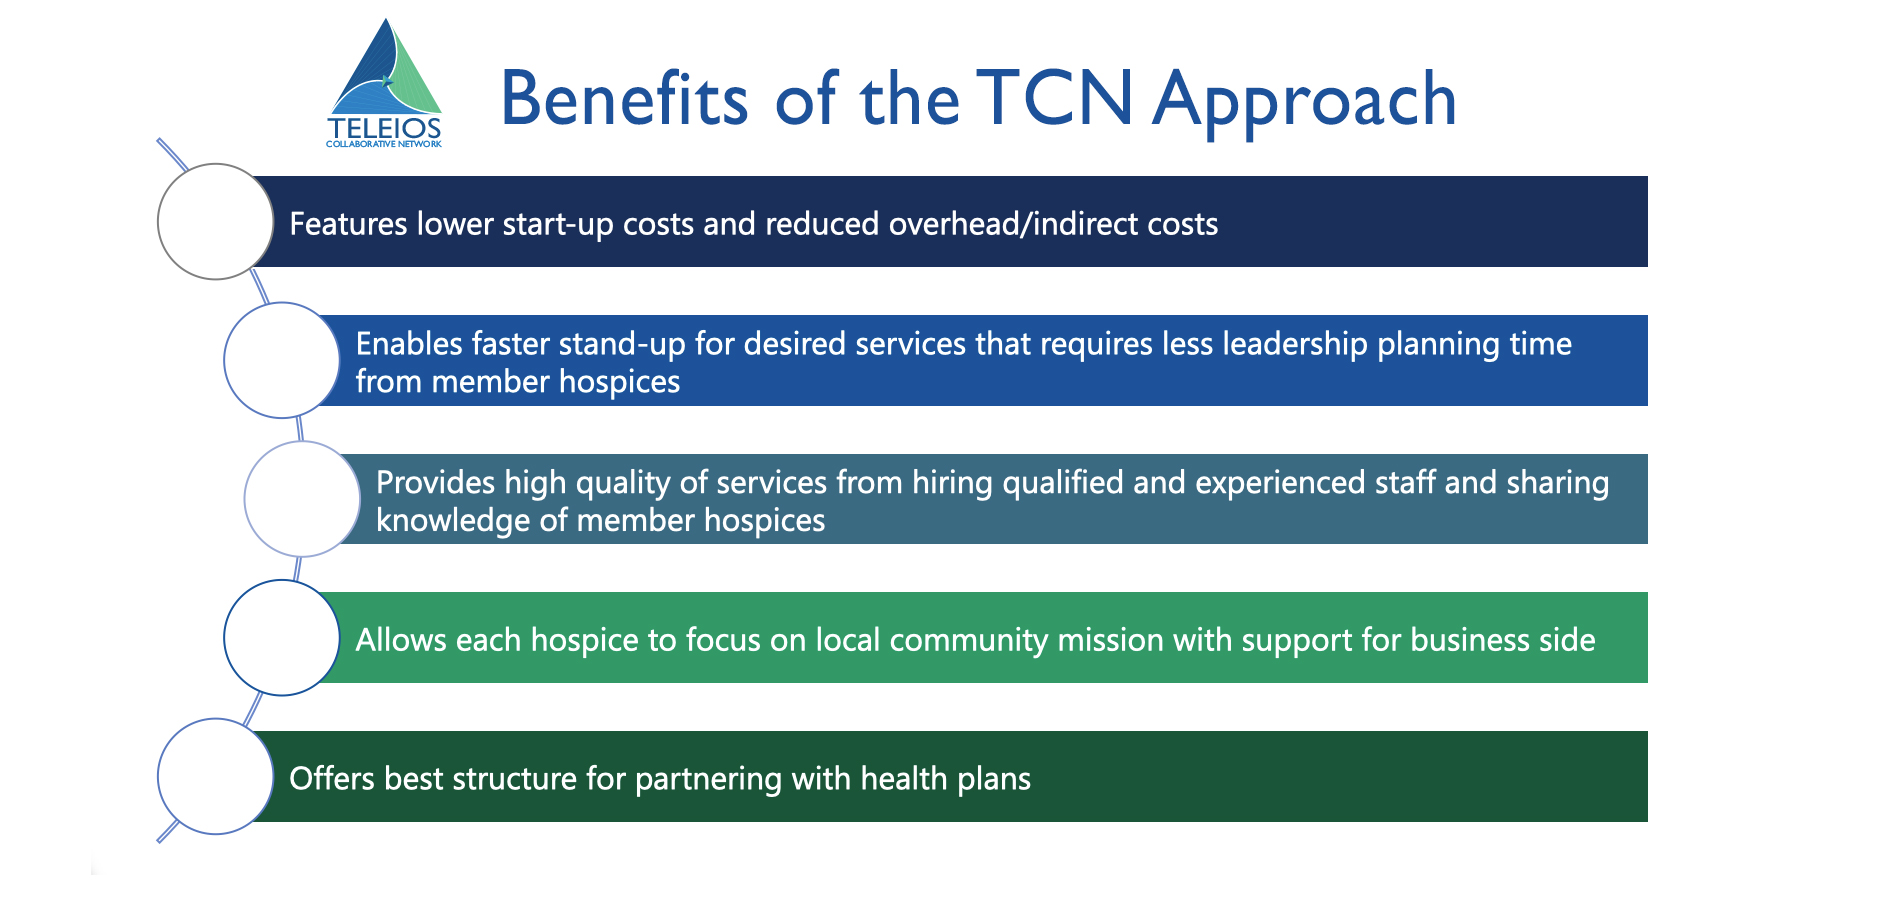 benefitsoftcn_approach